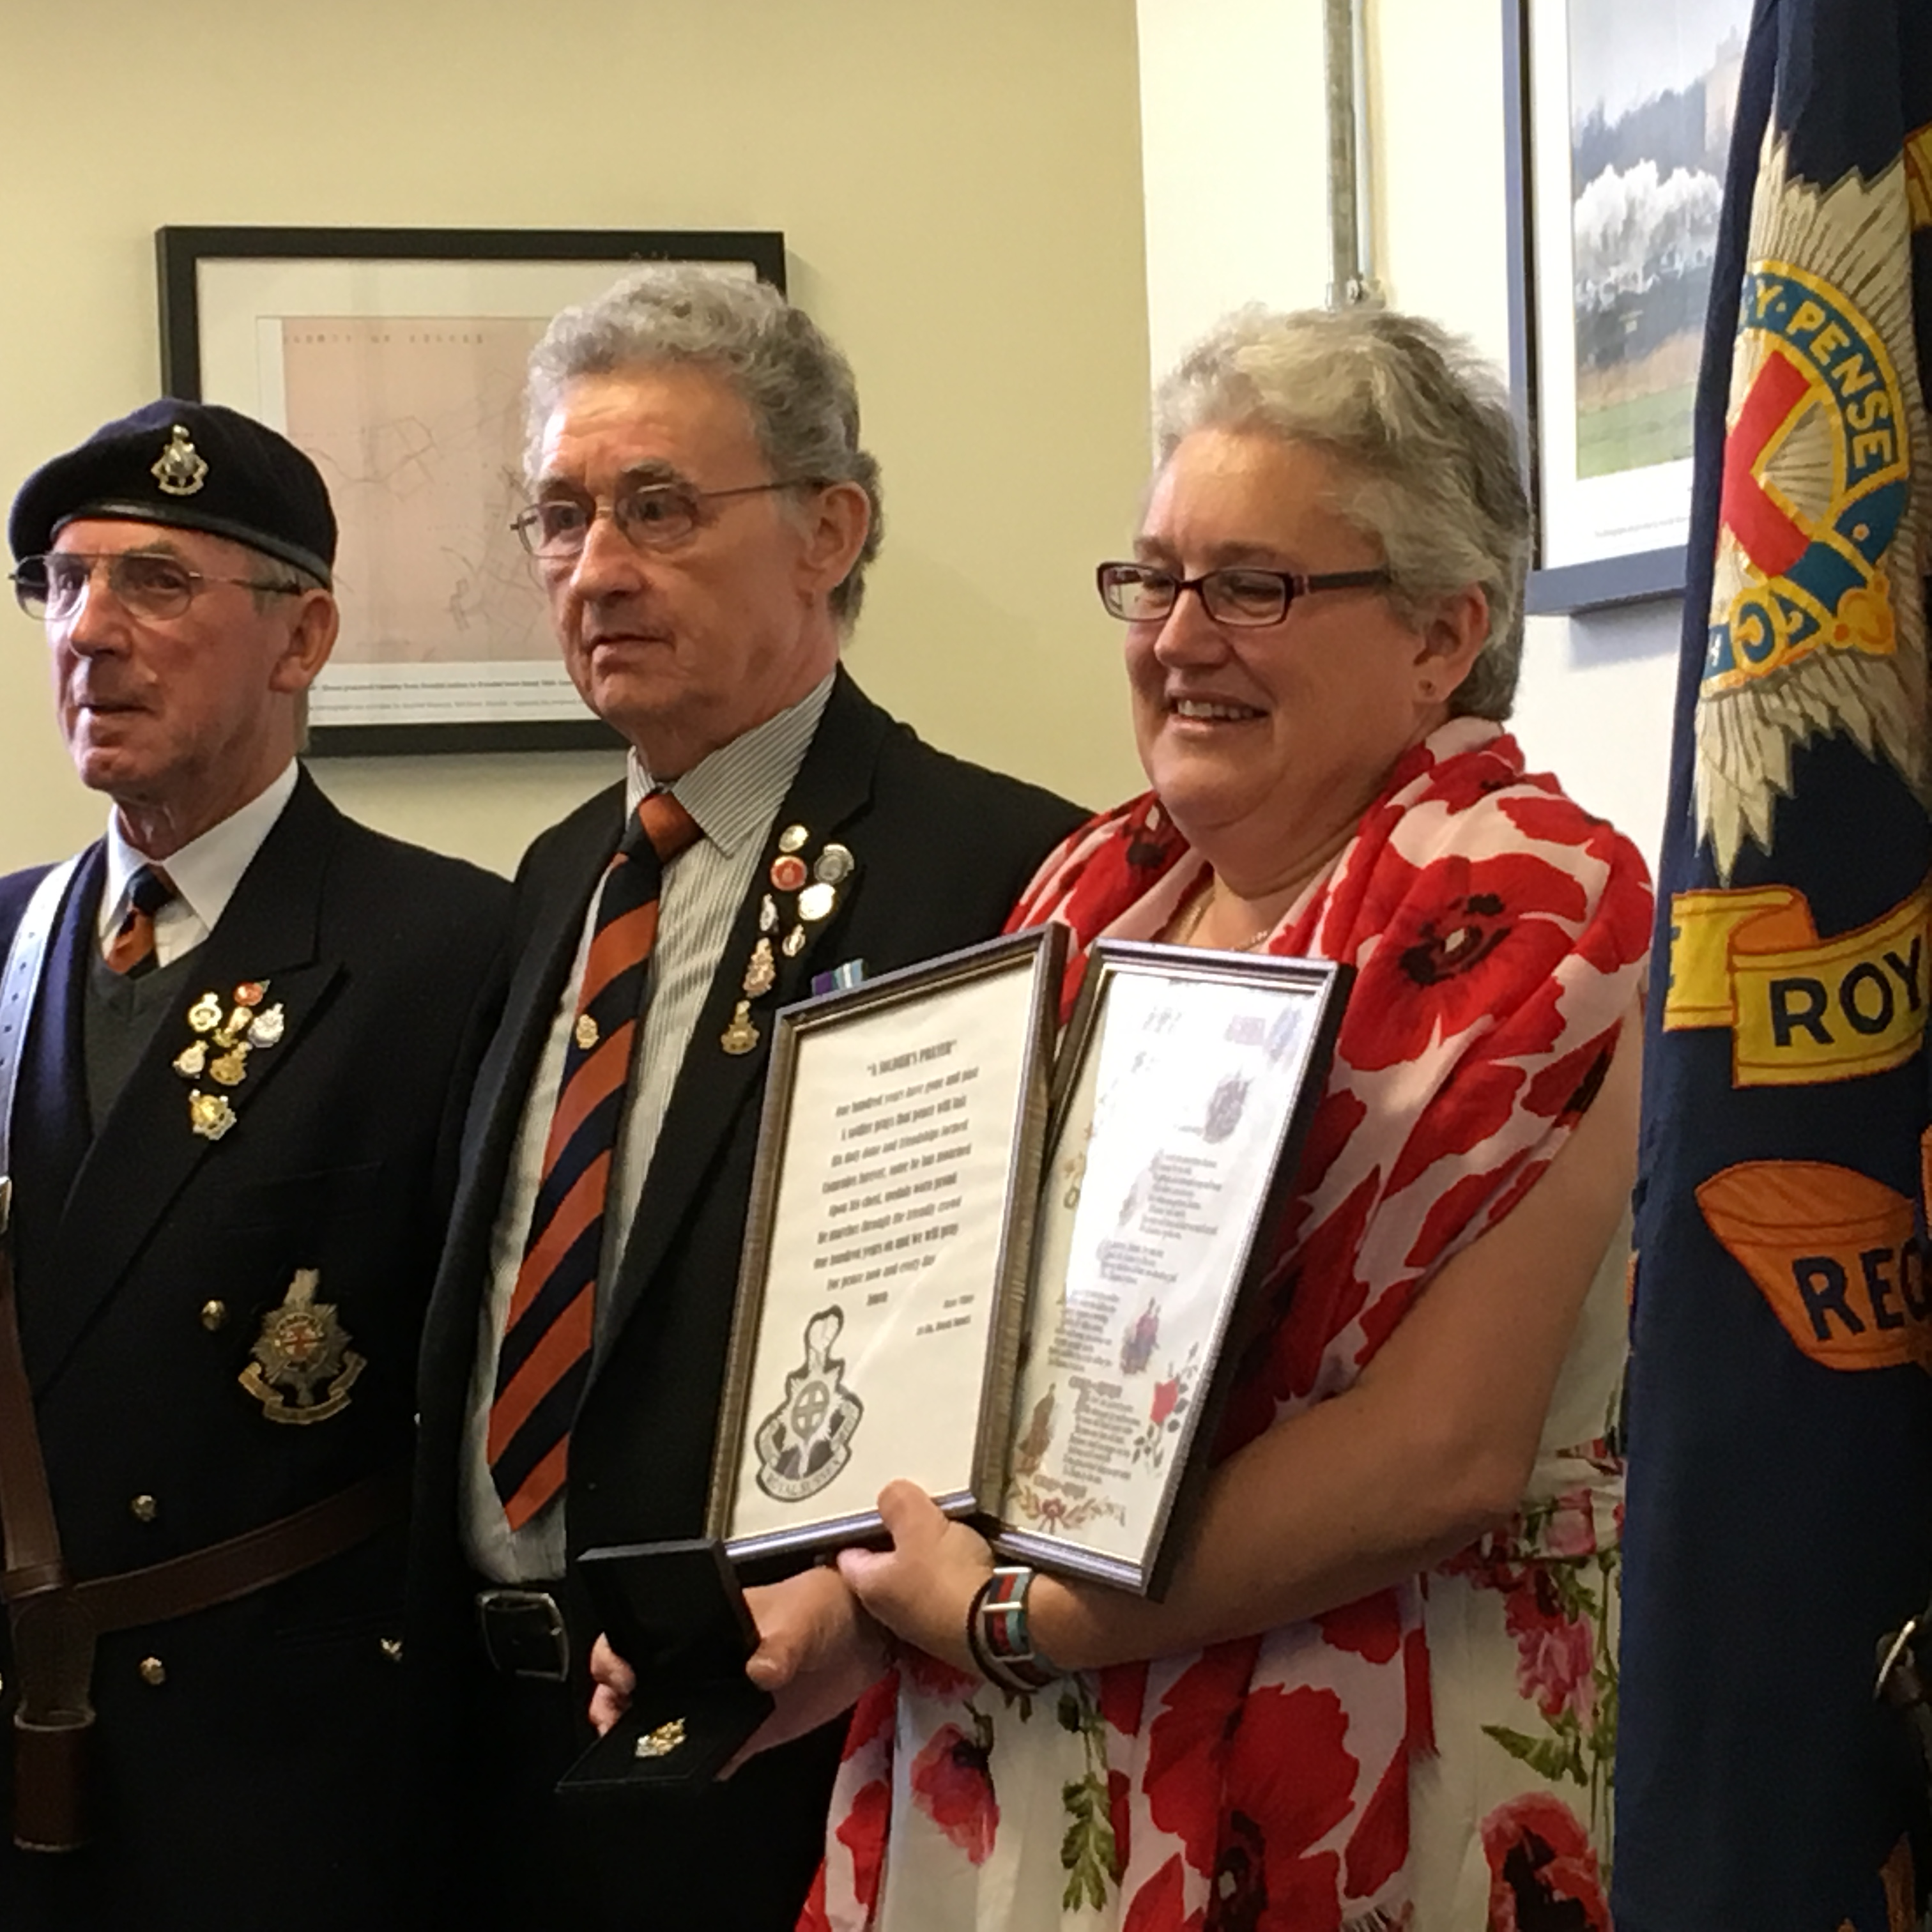 Laura receives presentation from Royal Sussex Regiment